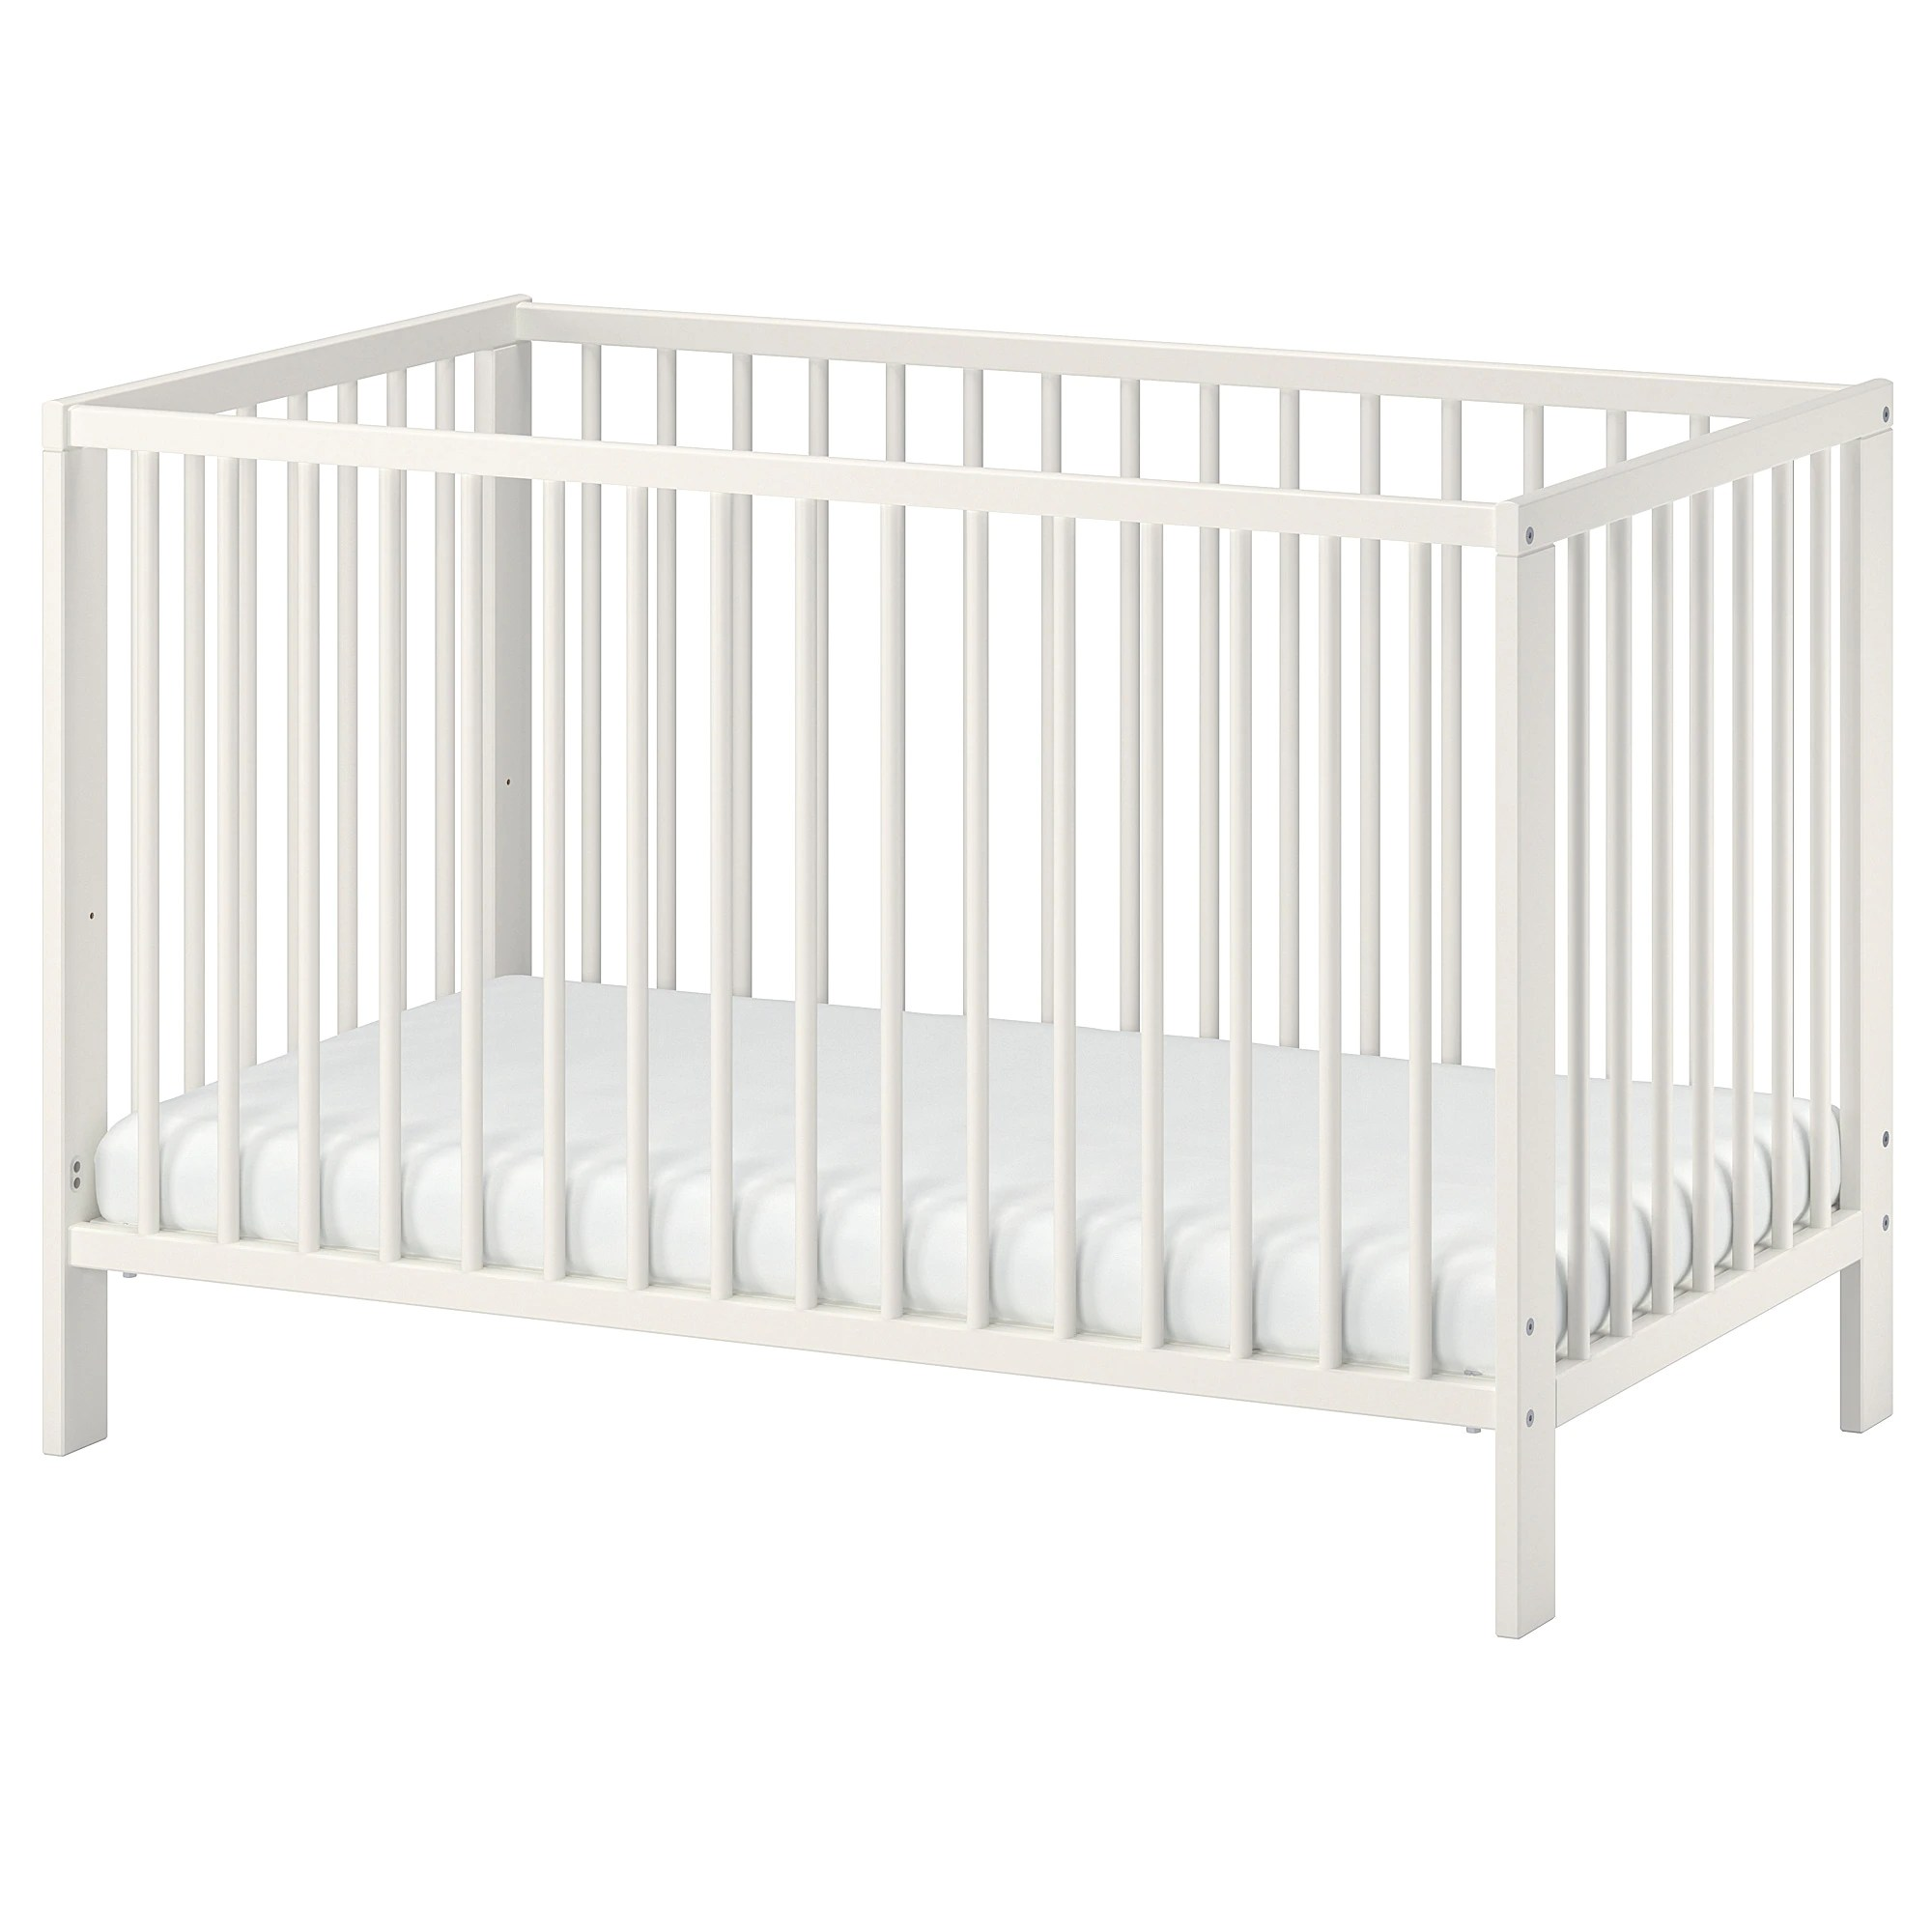 Peuterbed Ikea Gulliver Babybedje Wit